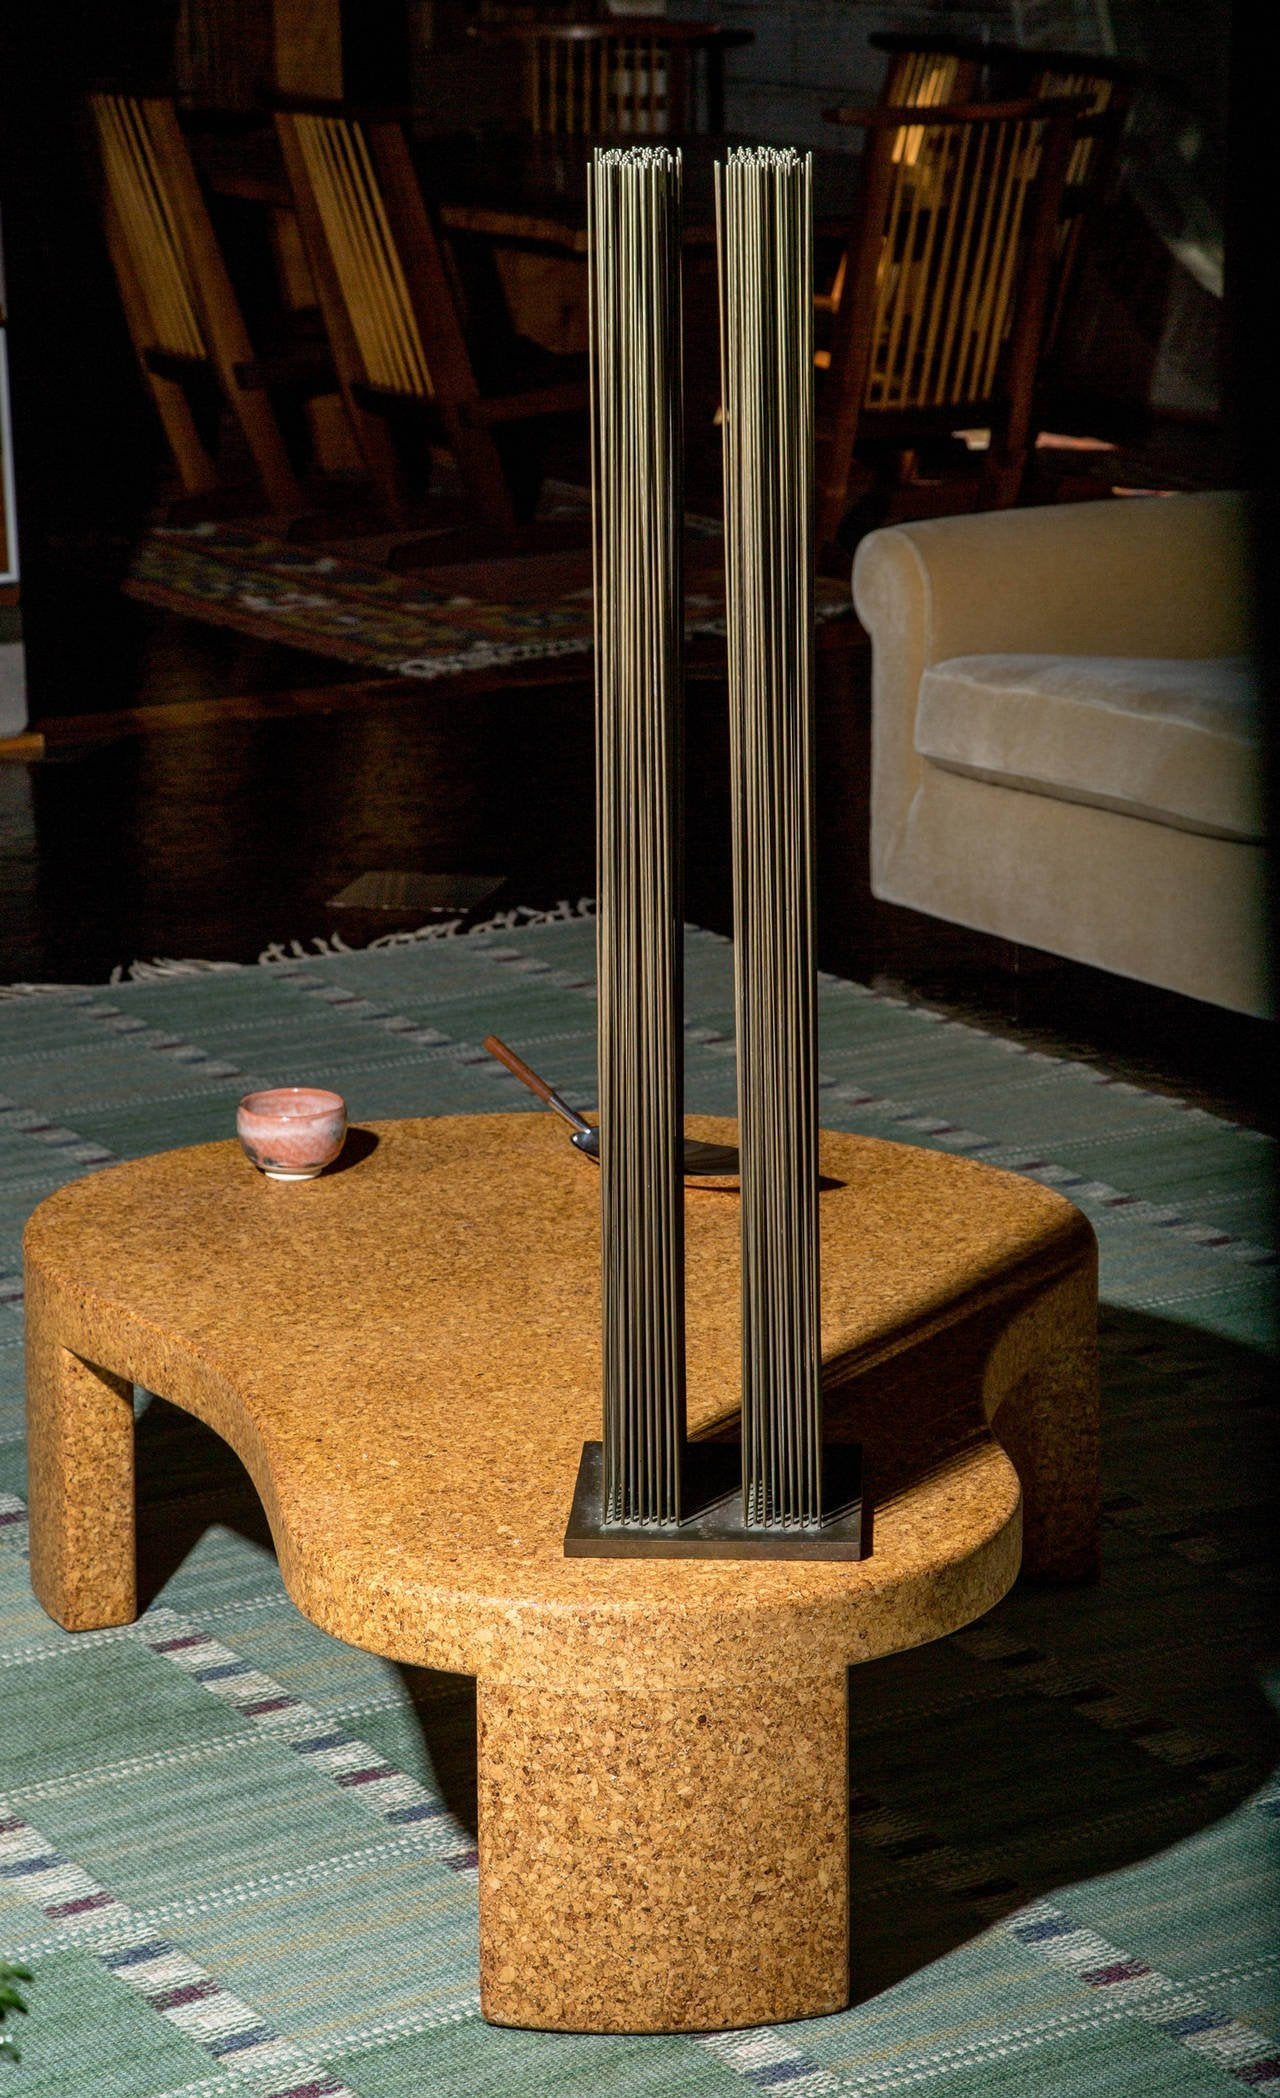 Paul Frankl Cork Coffee Table, 1948 - The Exchange Int